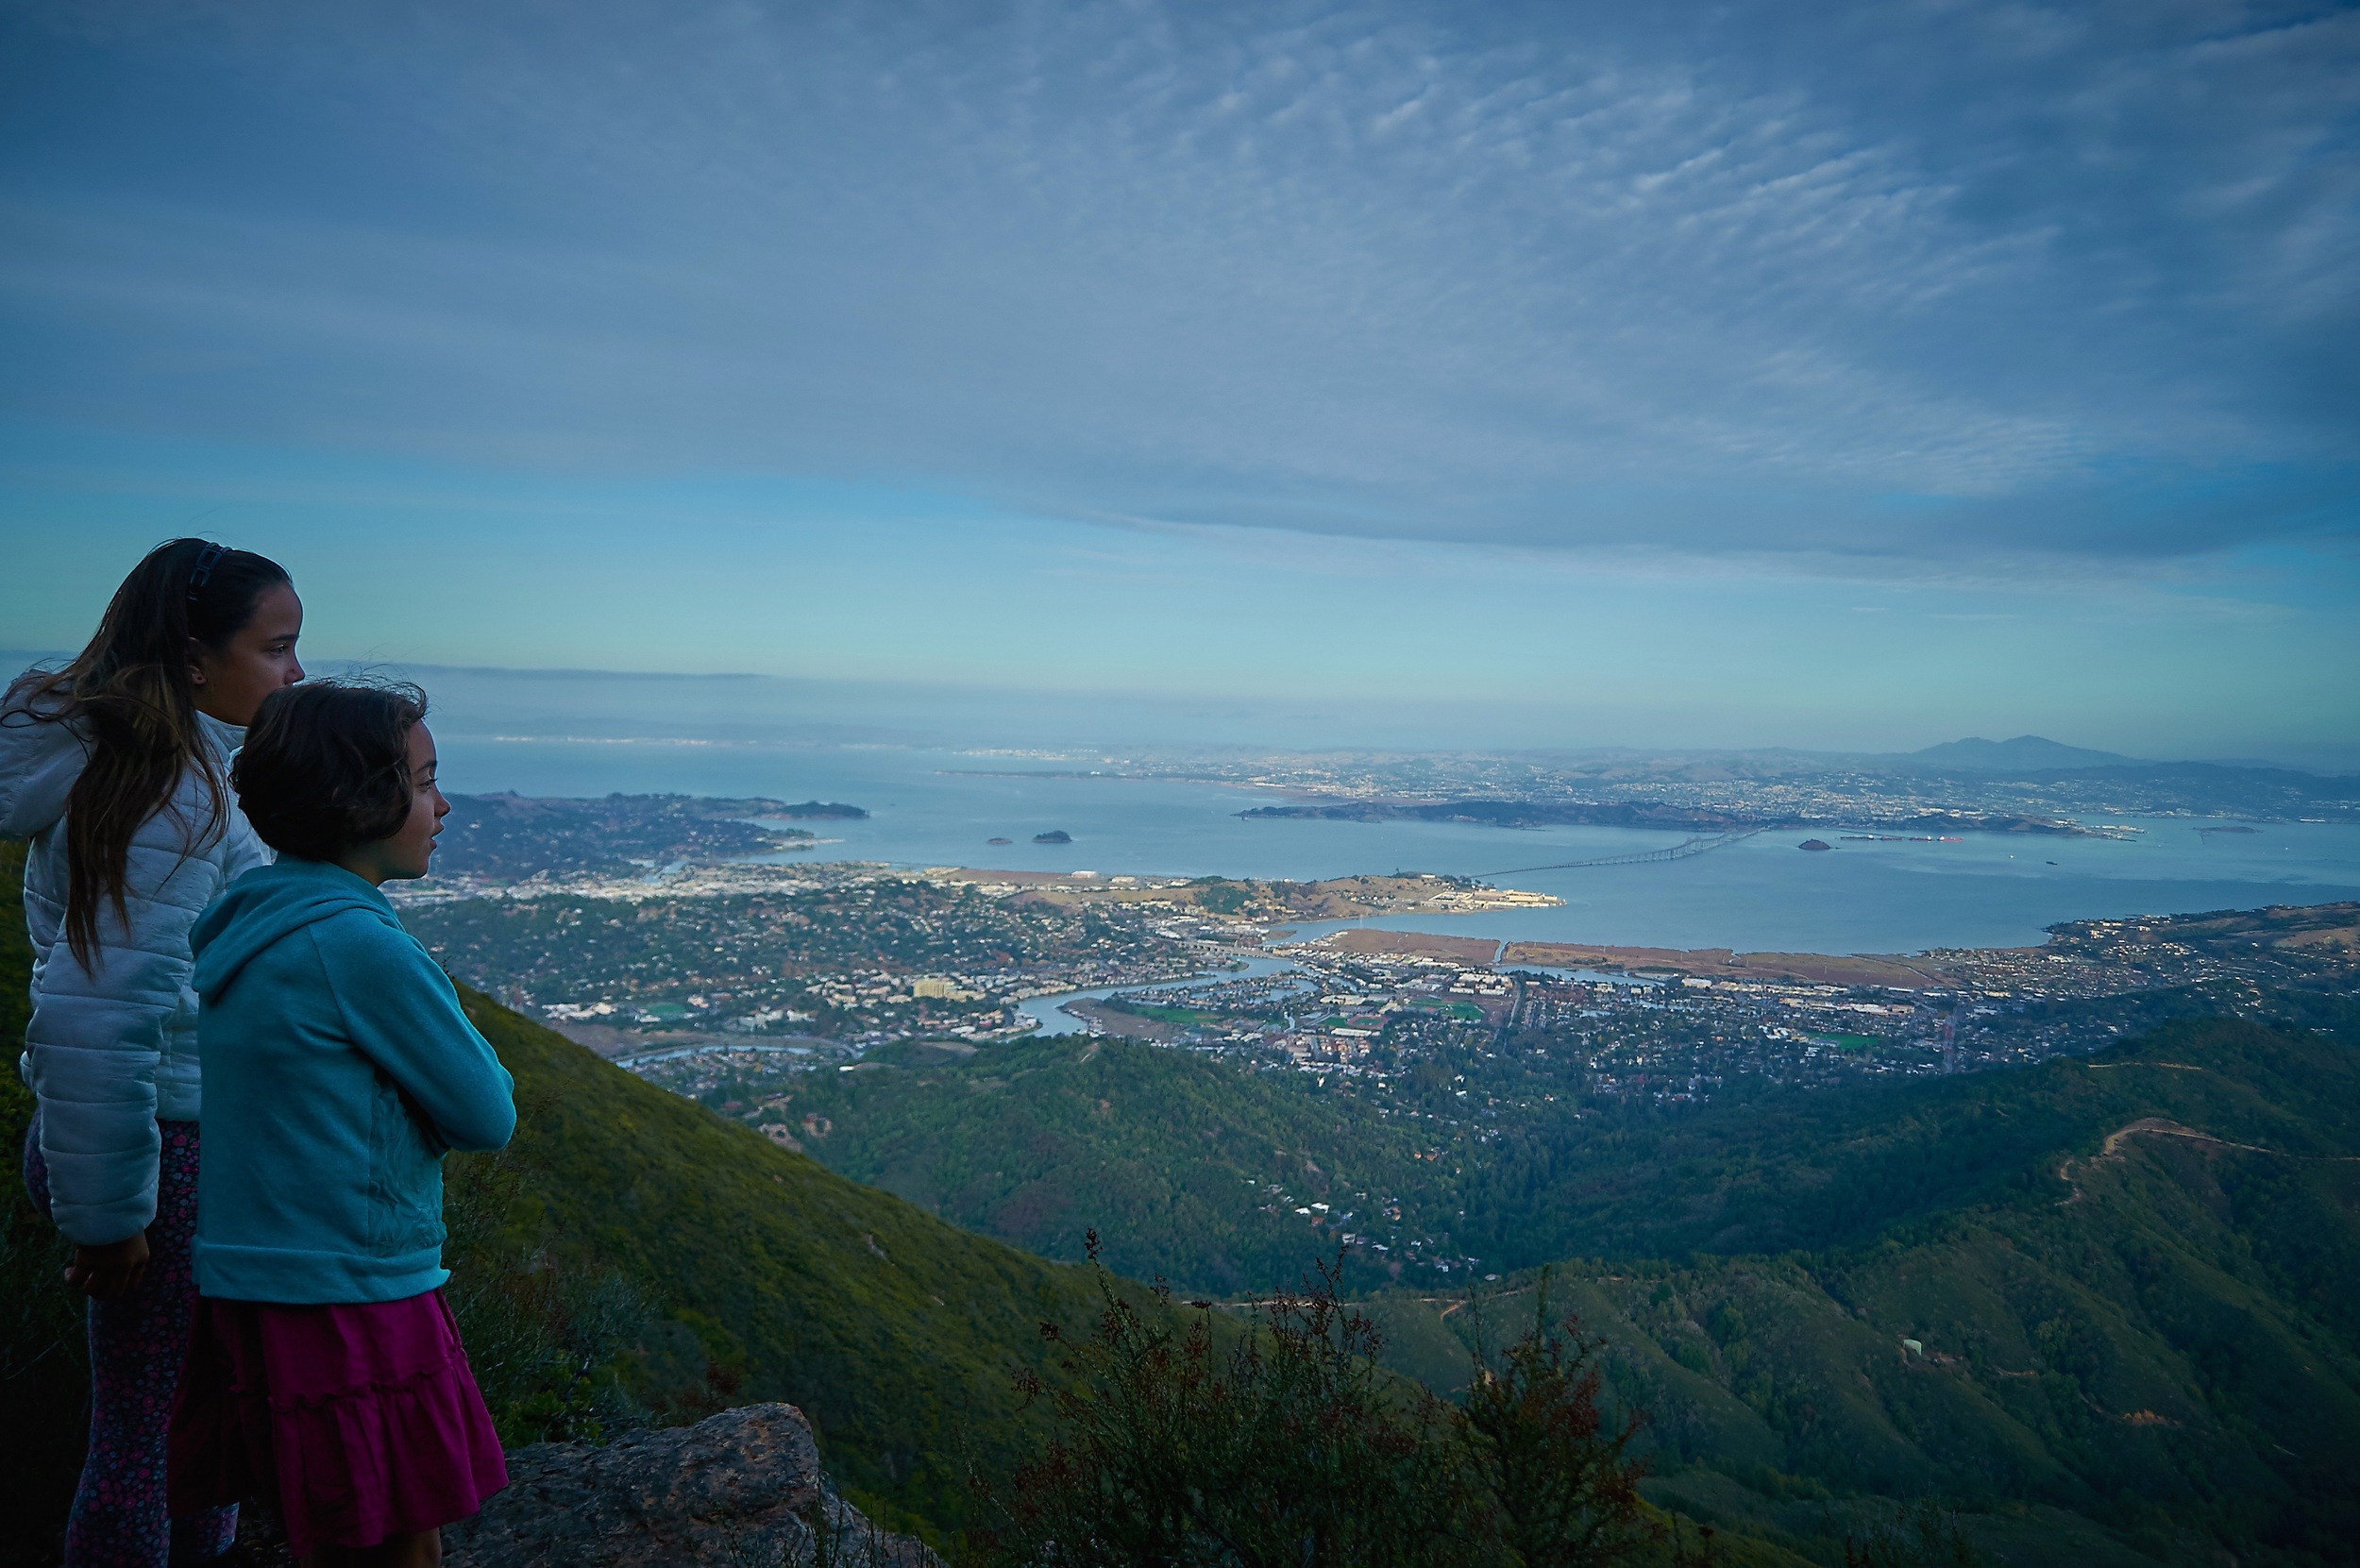 Charlotte and Savannah looking out from East Peak on Mt. Tamalpais towards the Richmond Bridge and the East Bay.